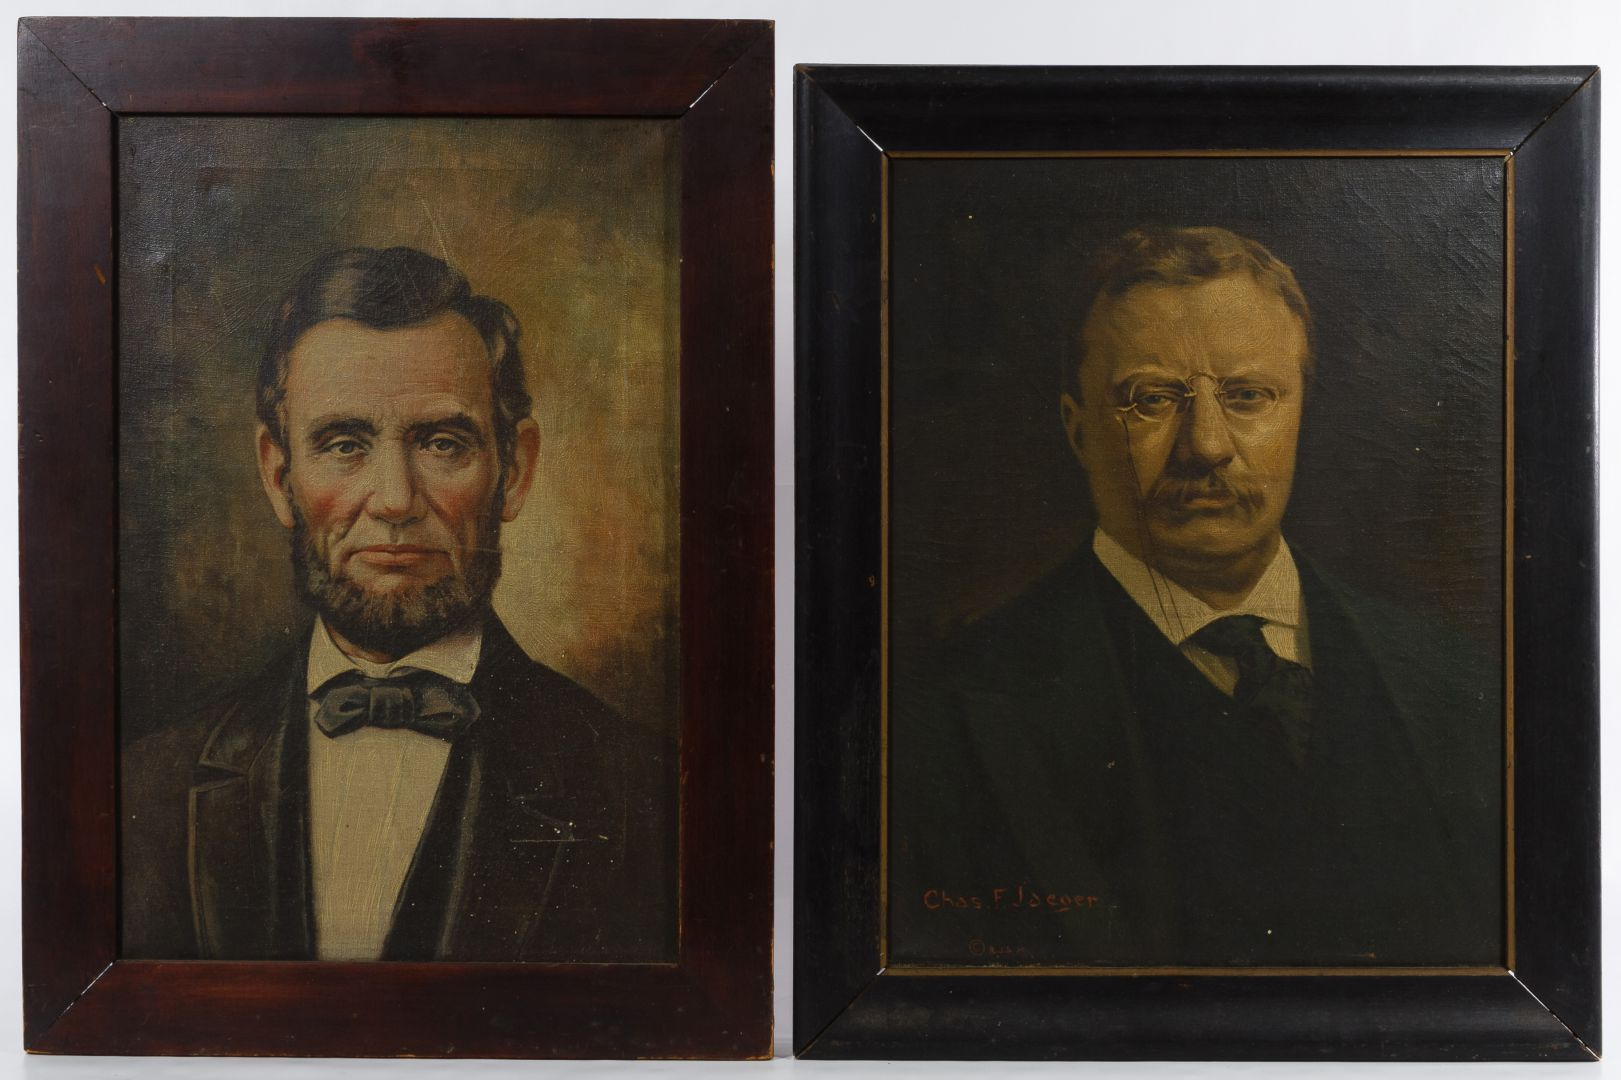 Lot 131 Abraham Lincoln And Teddy Roosevelt Enhanced